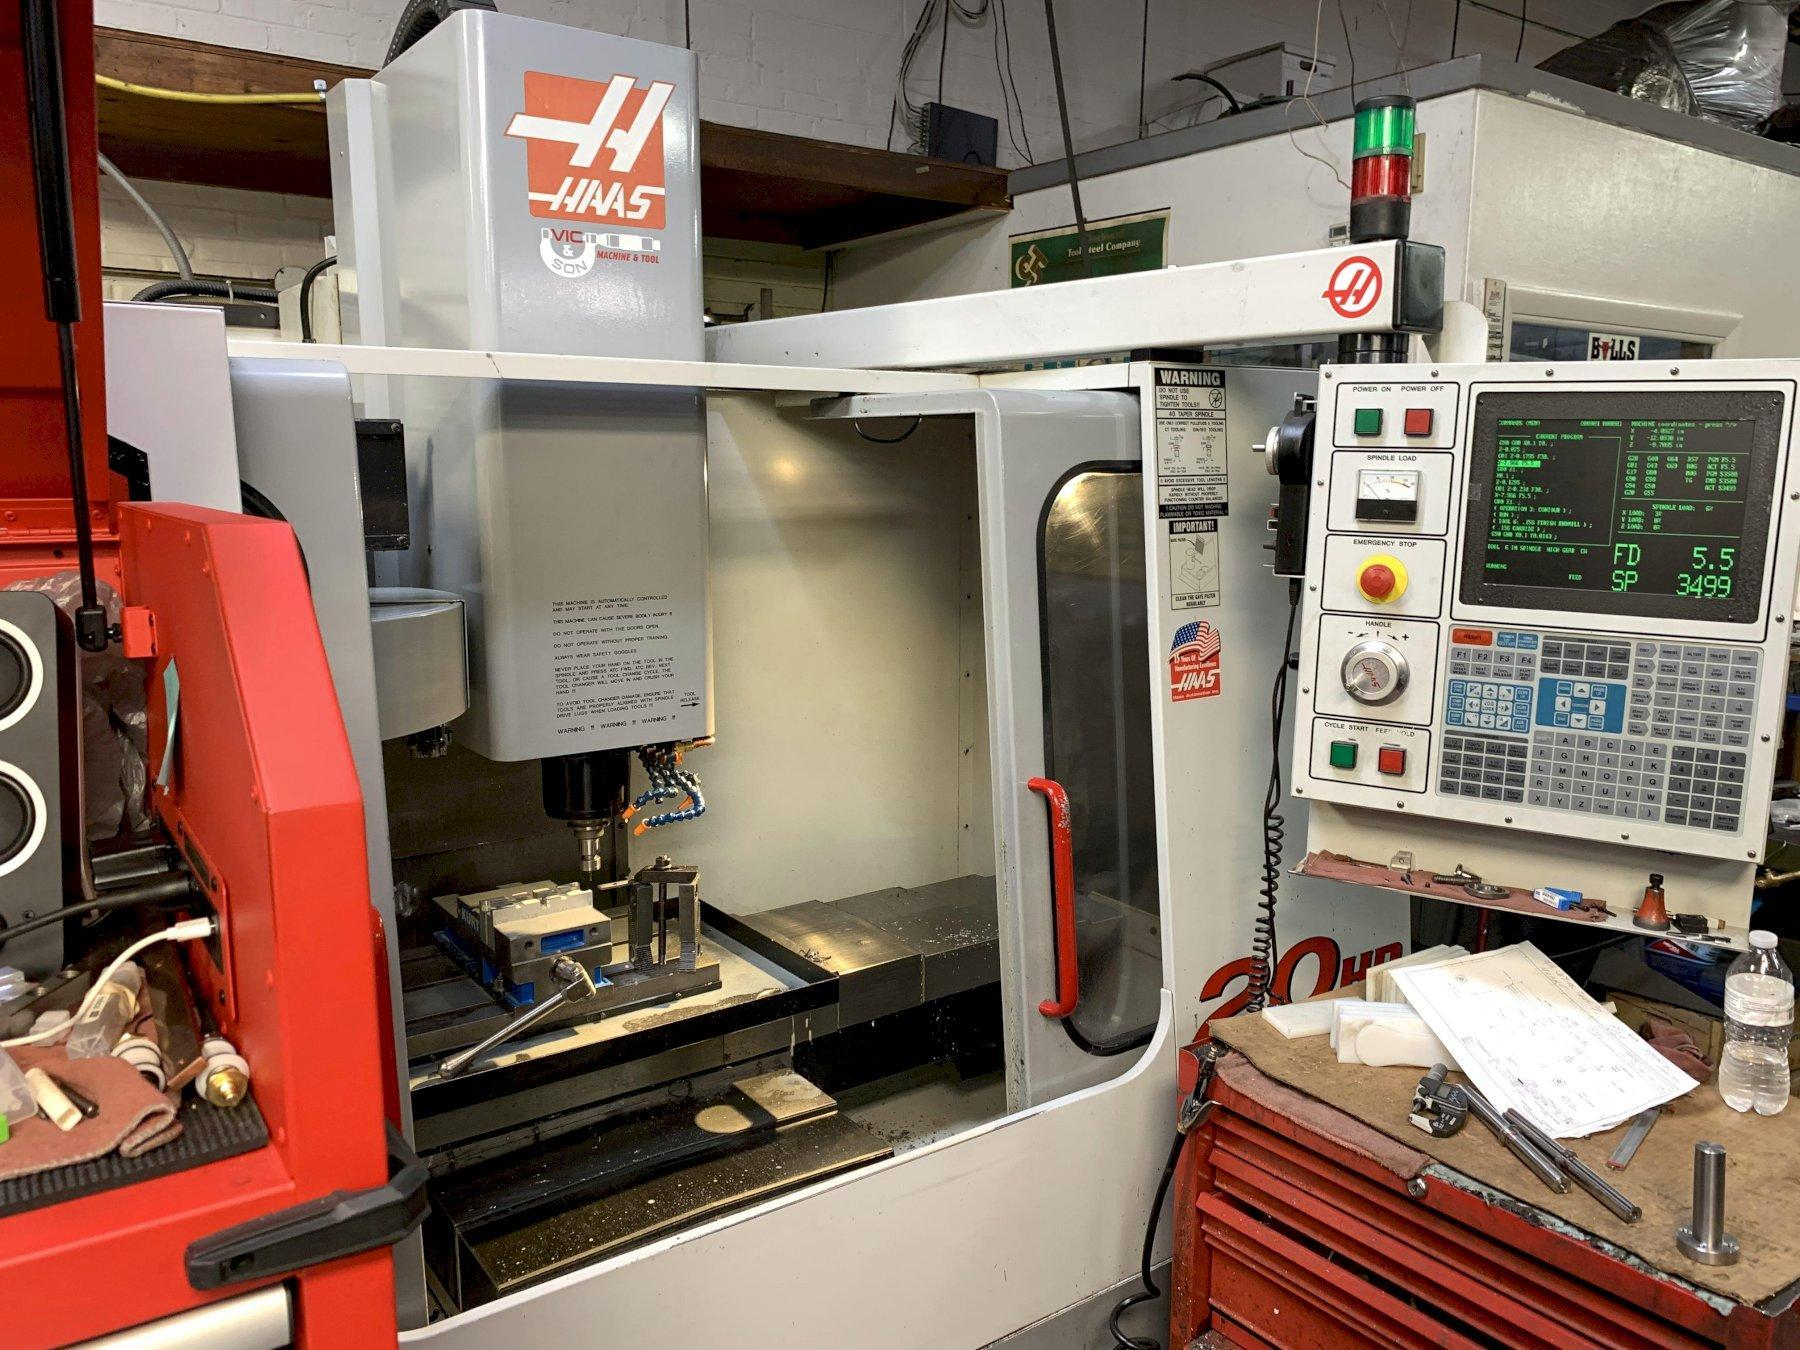 Haas VF-2/40 3-Axis CNC Vertical Machining Center